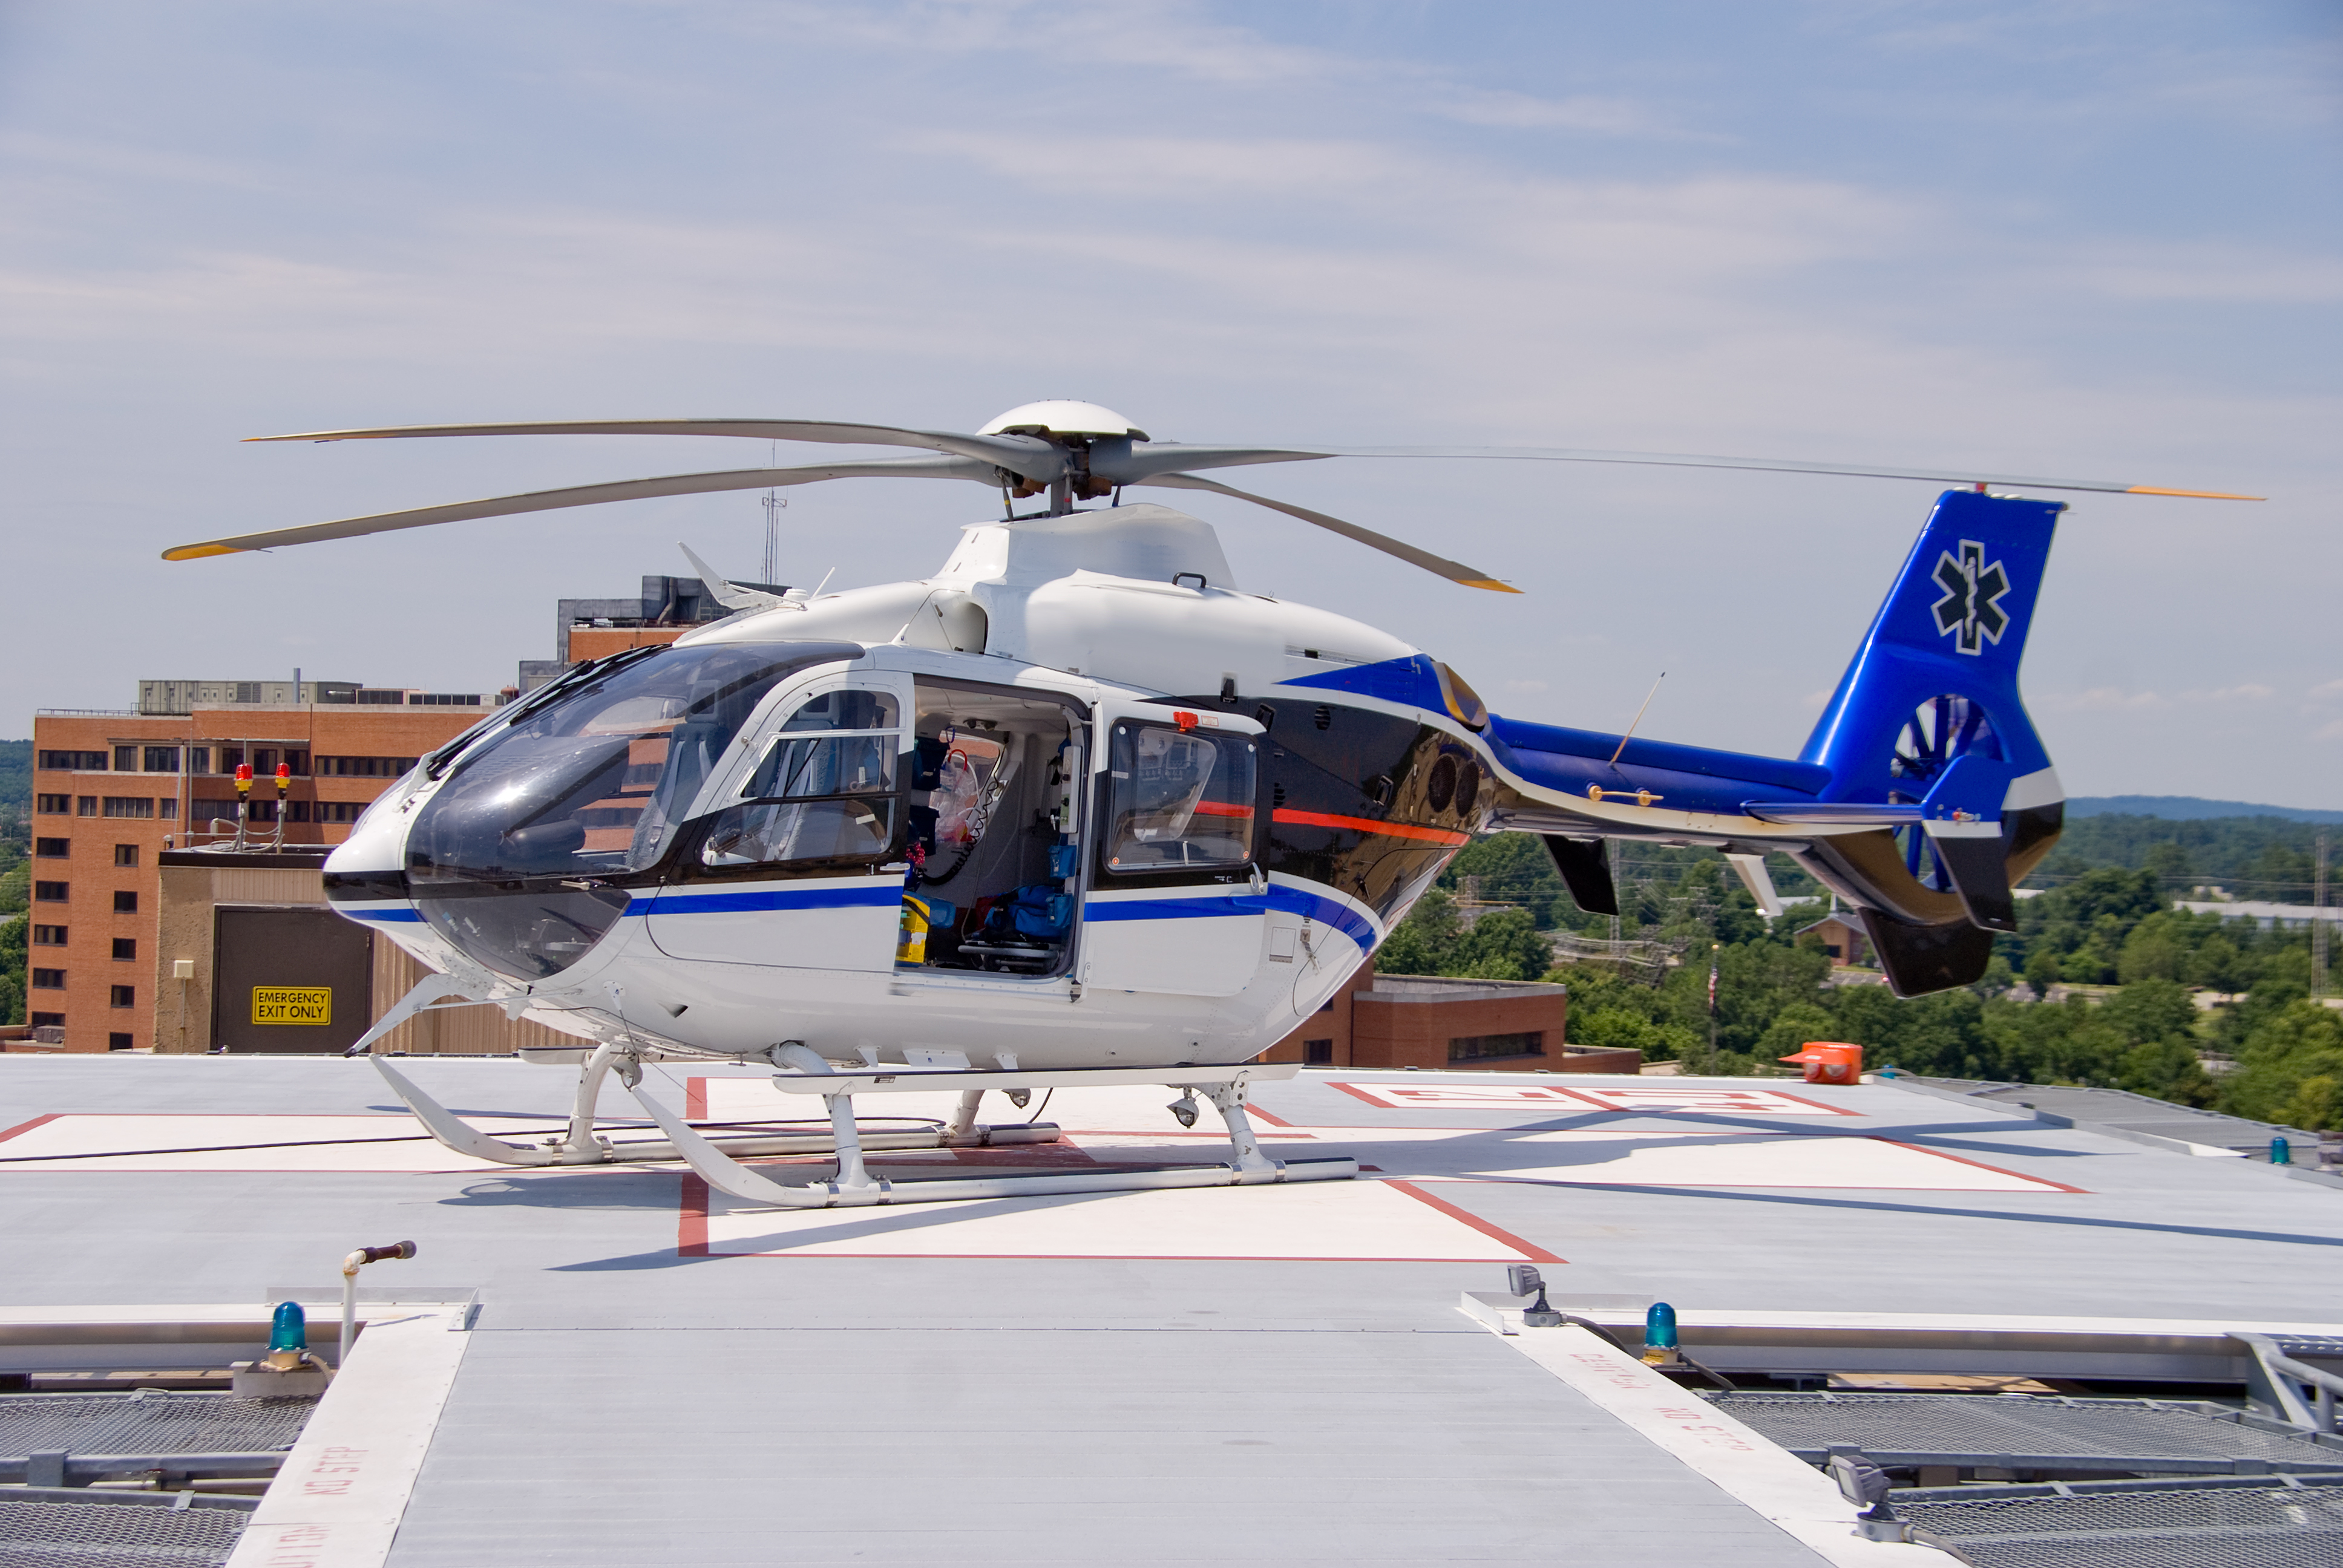 ecmo coverage and transportation